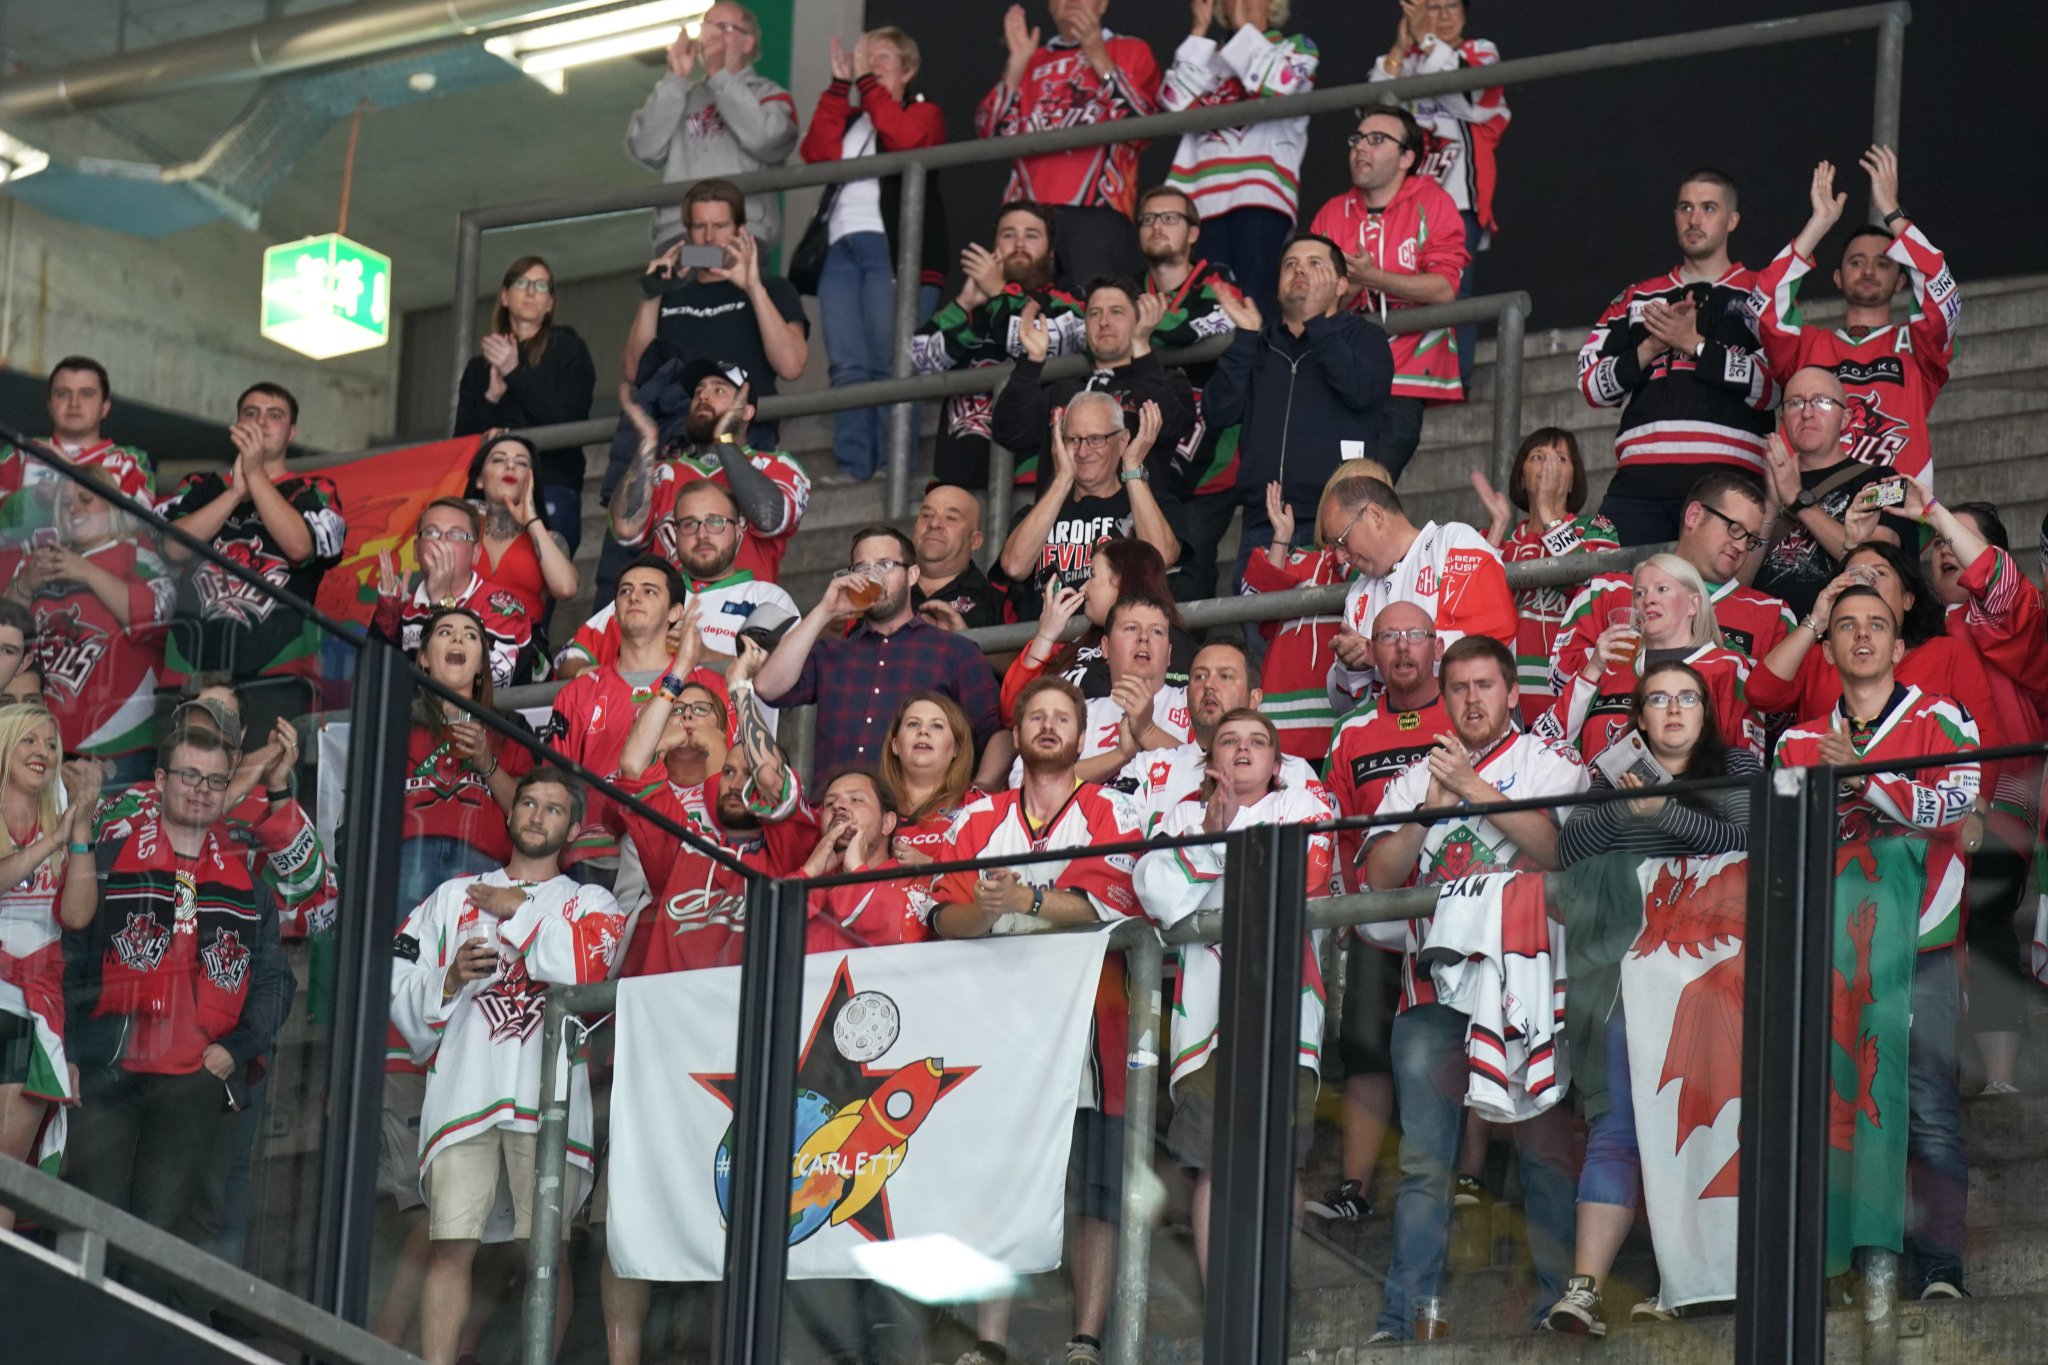 Cardiff Devils On Twitter